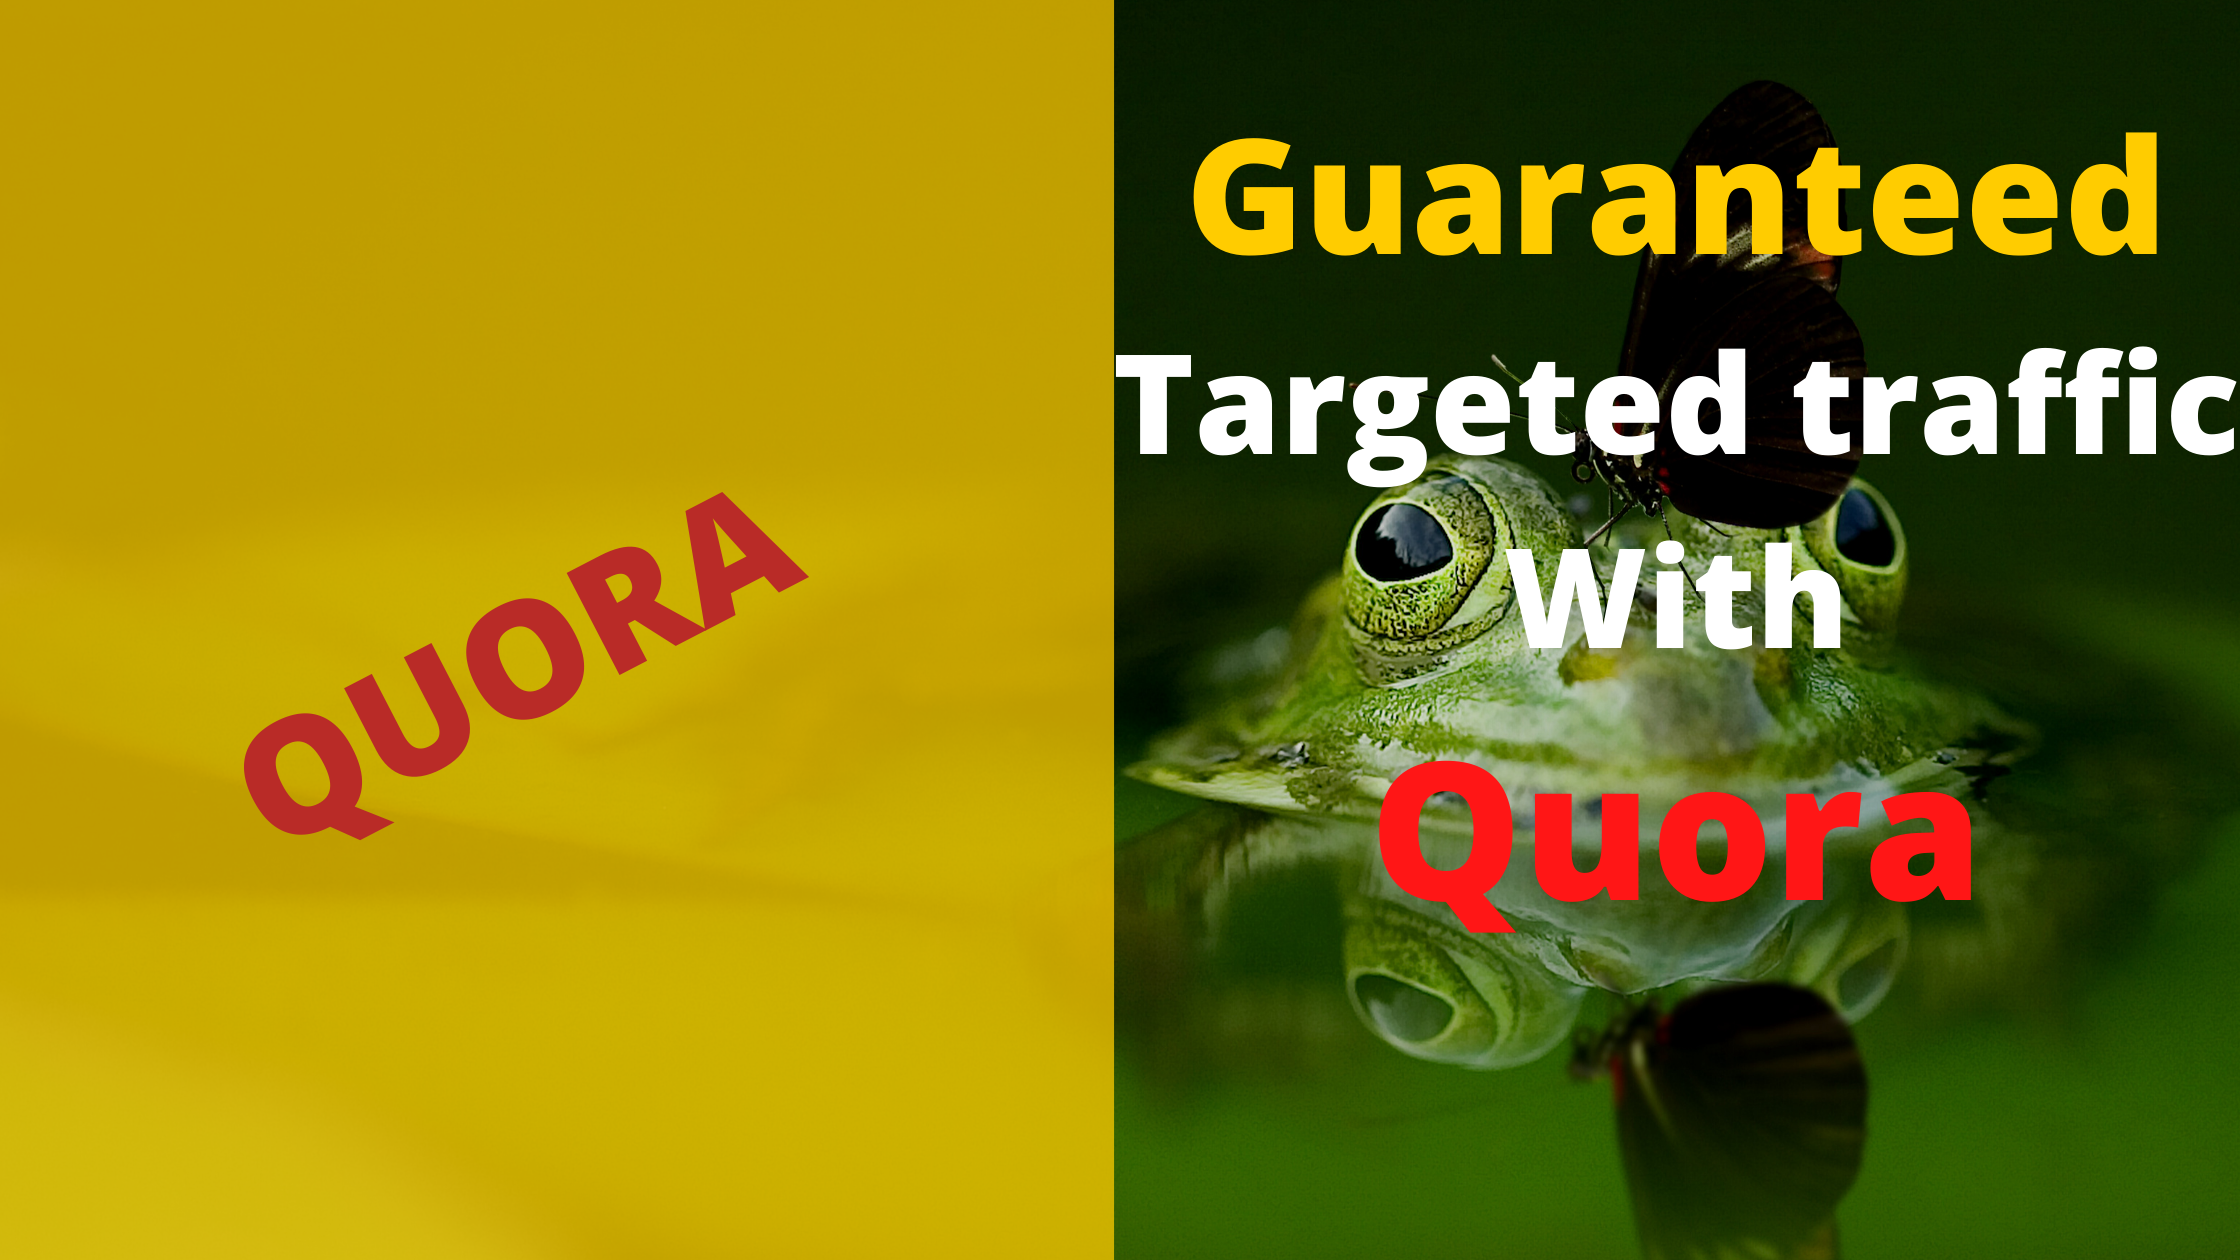 I will offer guaranteed targeted traffic with 40 quora answer.